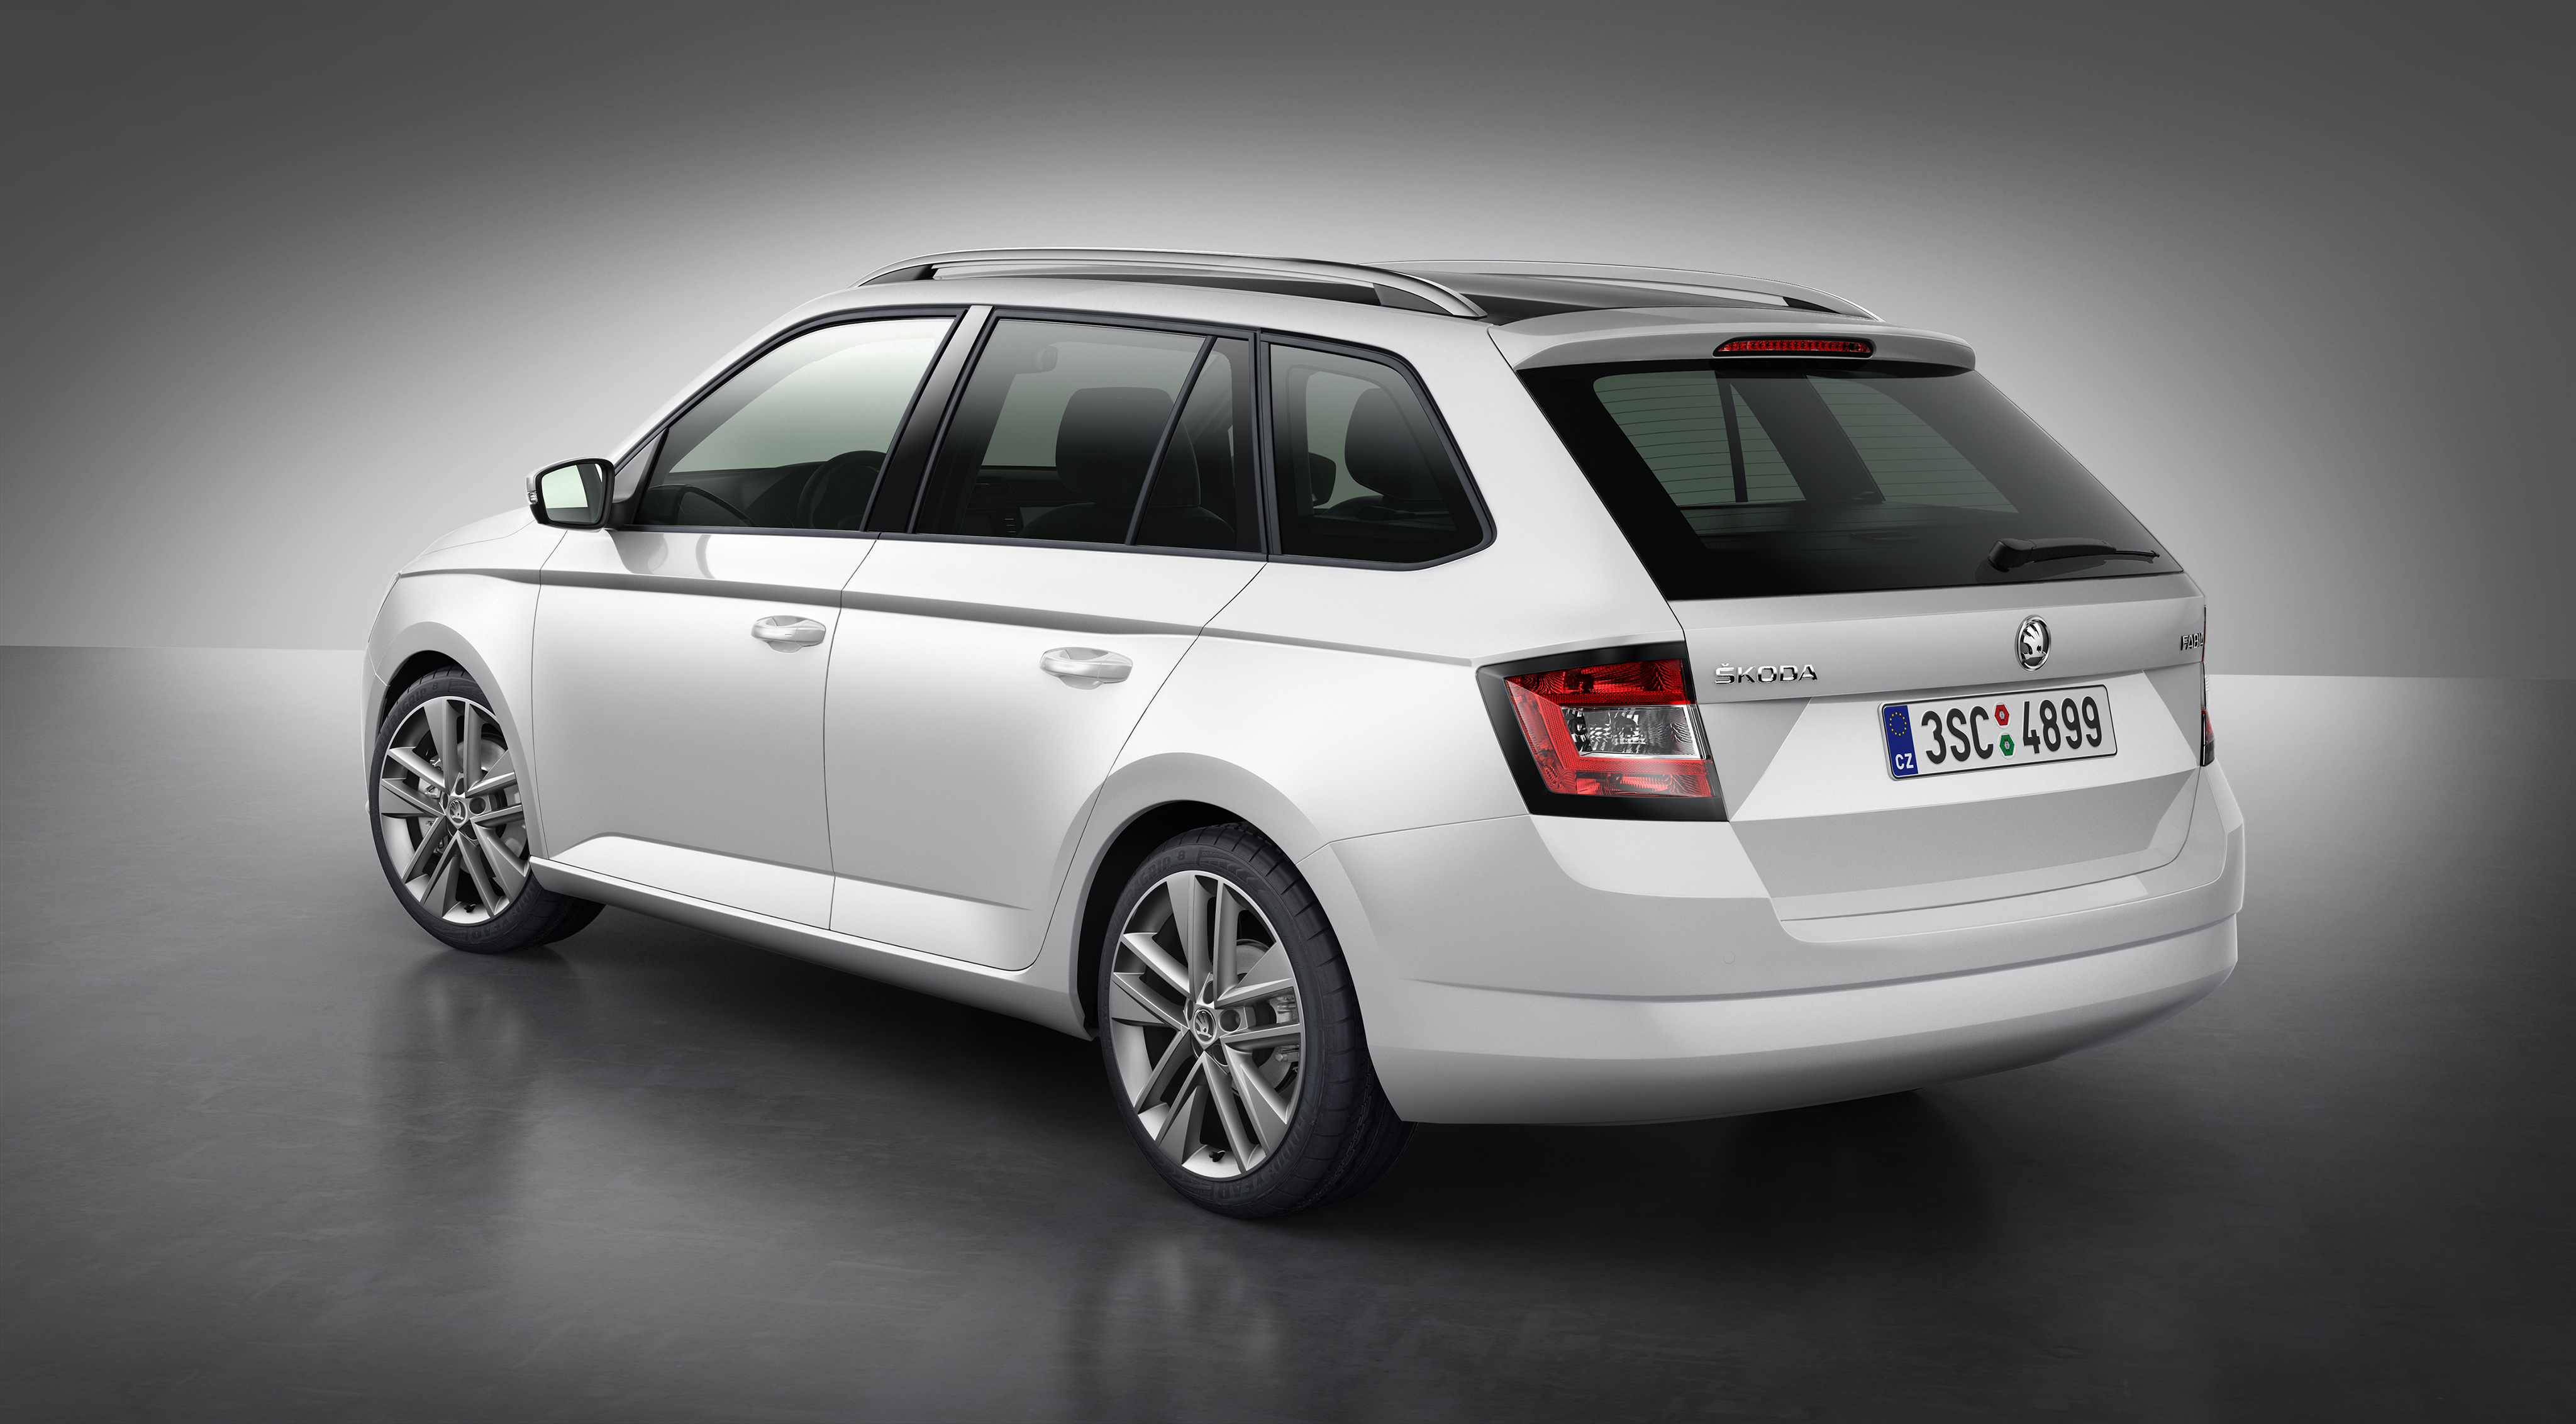 2015 skoda fabia estate uk pricing announced autoevolution. Black Bedroom Furniture Sets. Home Design Ideas